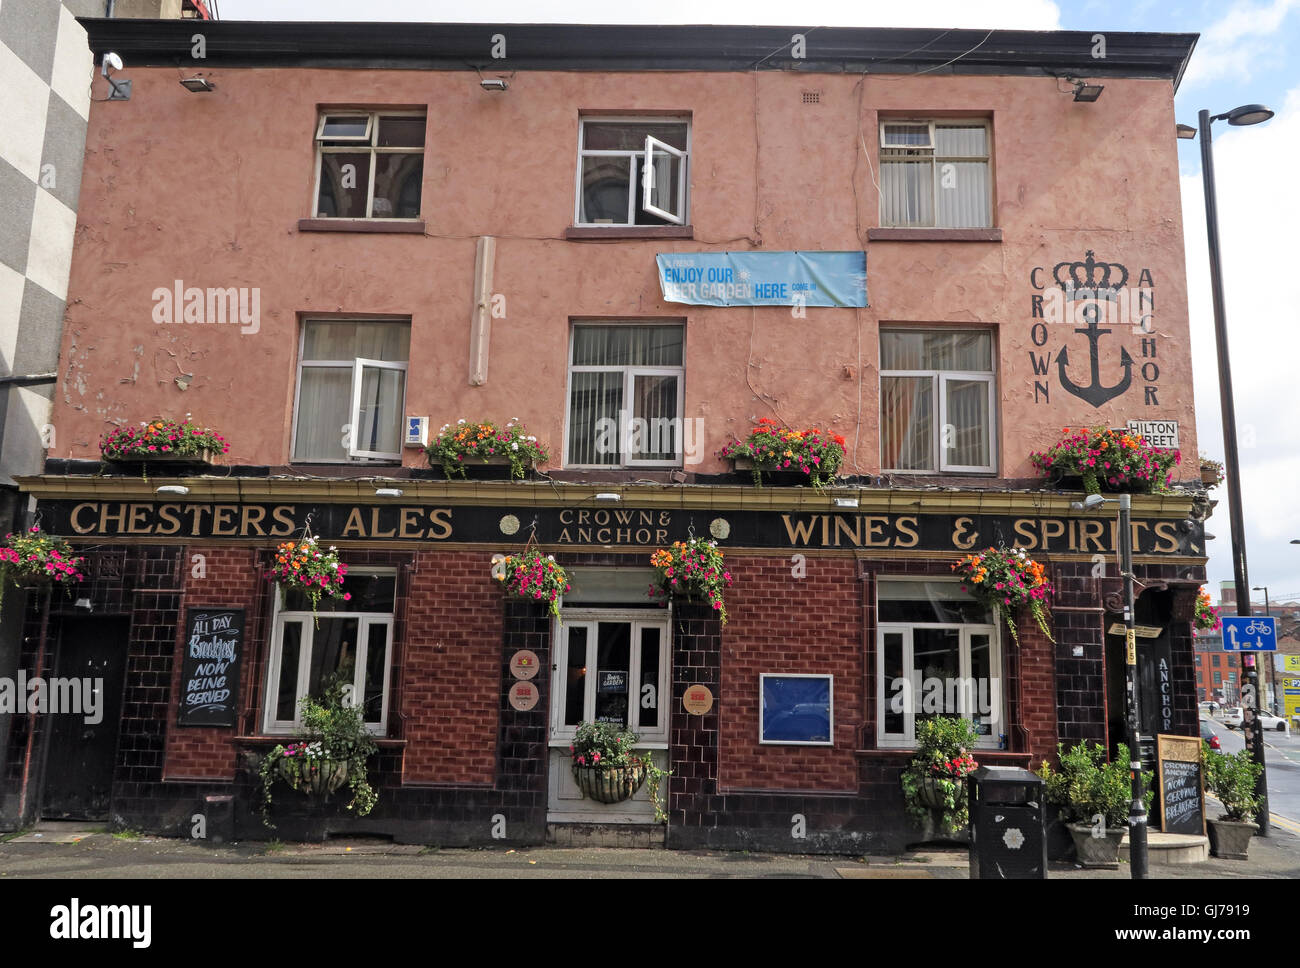 Old Chesters Ales pub, Crown & Anchor, Hilton St, Northern Quarter NQ, Manchester, North West England, M1 2EE - Stock Image